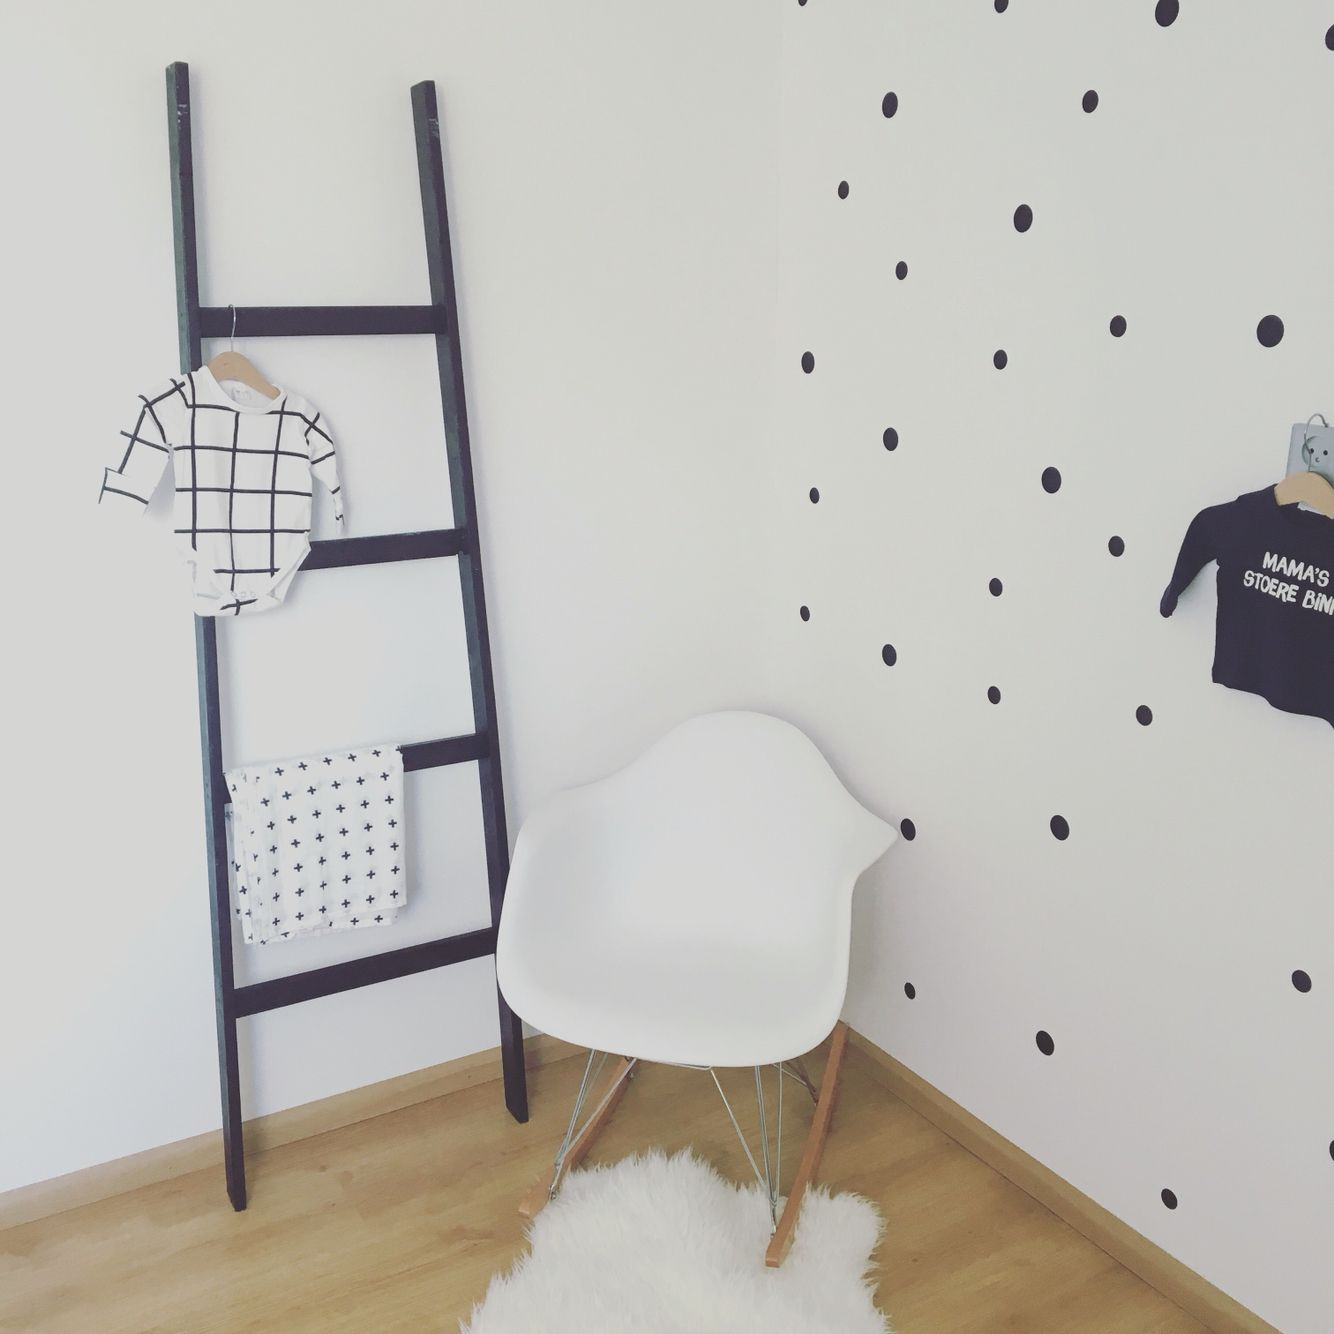 Behang Zwart Wit Babykamer.Babykamer Zwart Wit Met Stippen Behang Black And White Baby Kamer